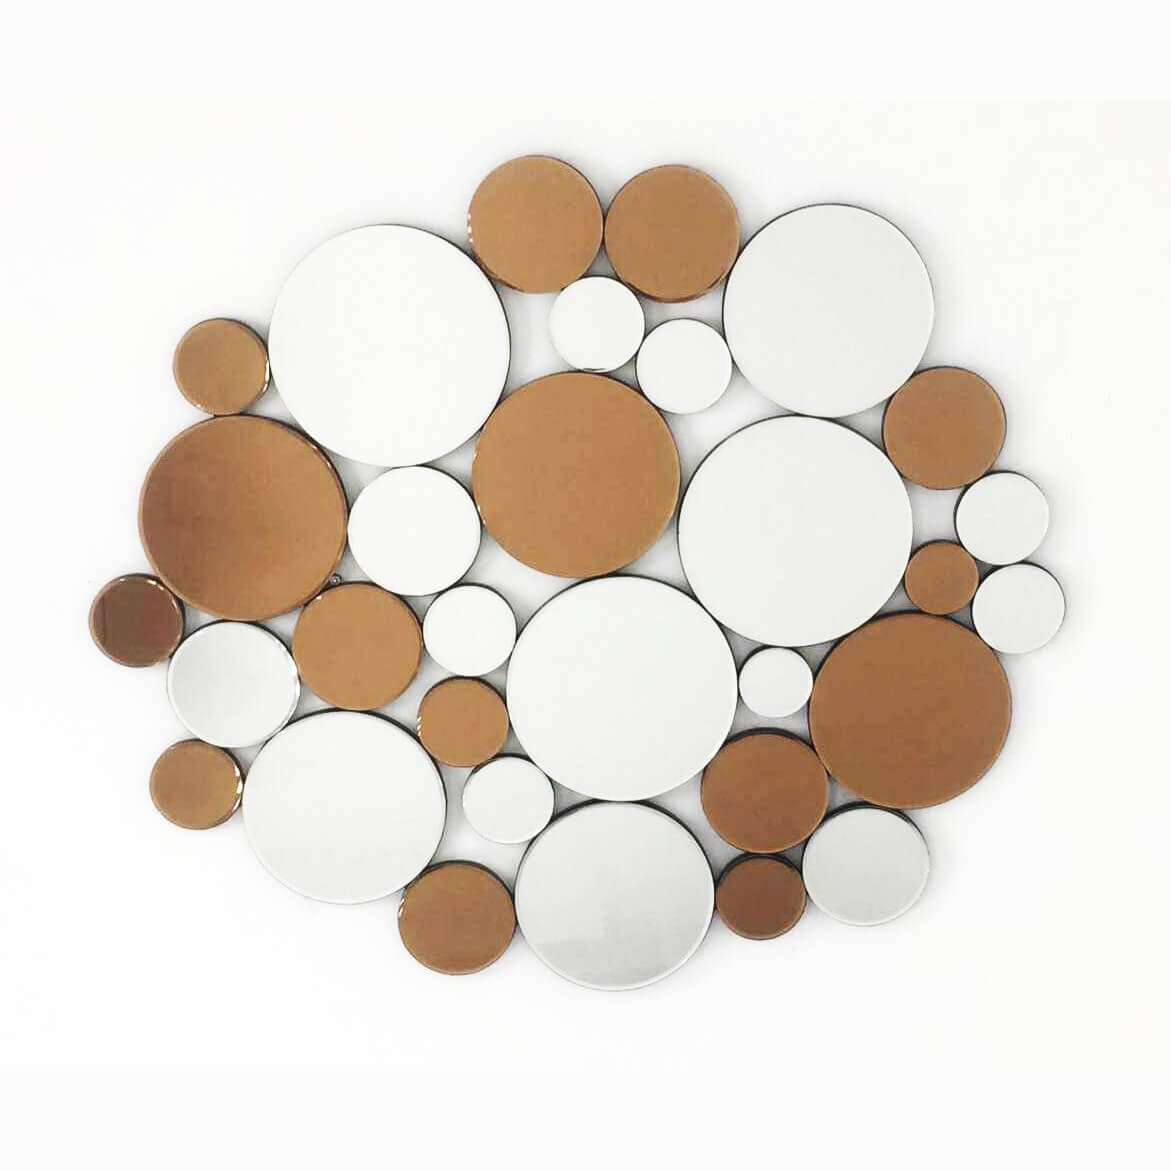 Fab Glass and Mirror FAB-WSTC003 Decorative Sunburst, Bathroom Wall Mirrors, 35.5 X 40.5, Clear &Bronze by Fab Glass and Mirror